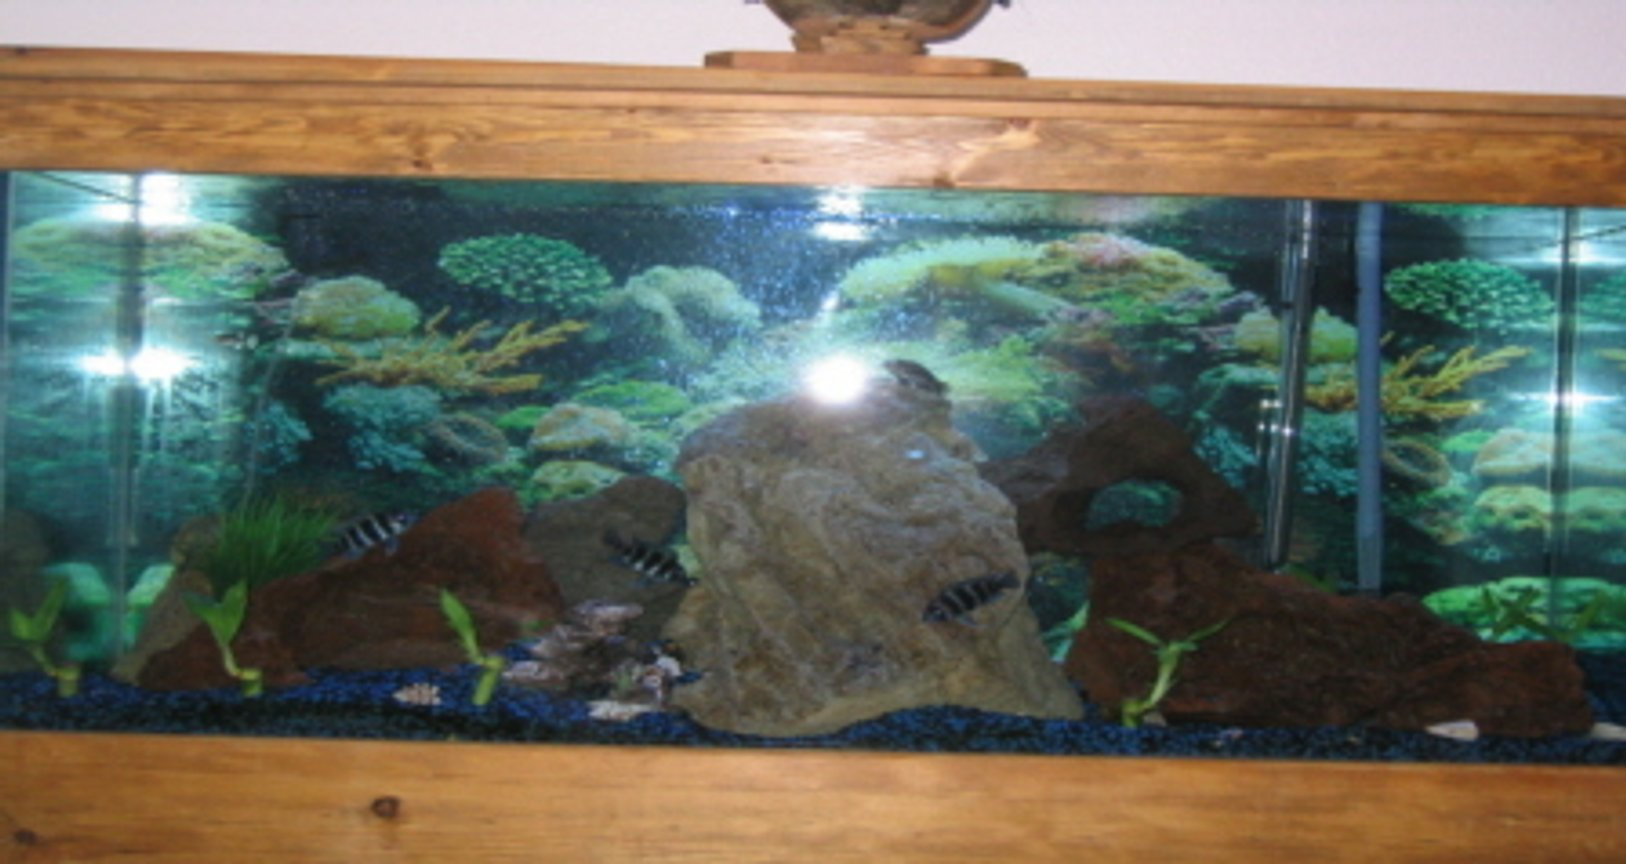 90 gallons freshwater fish tank (mostly fish and non-living decorations) - freshwater